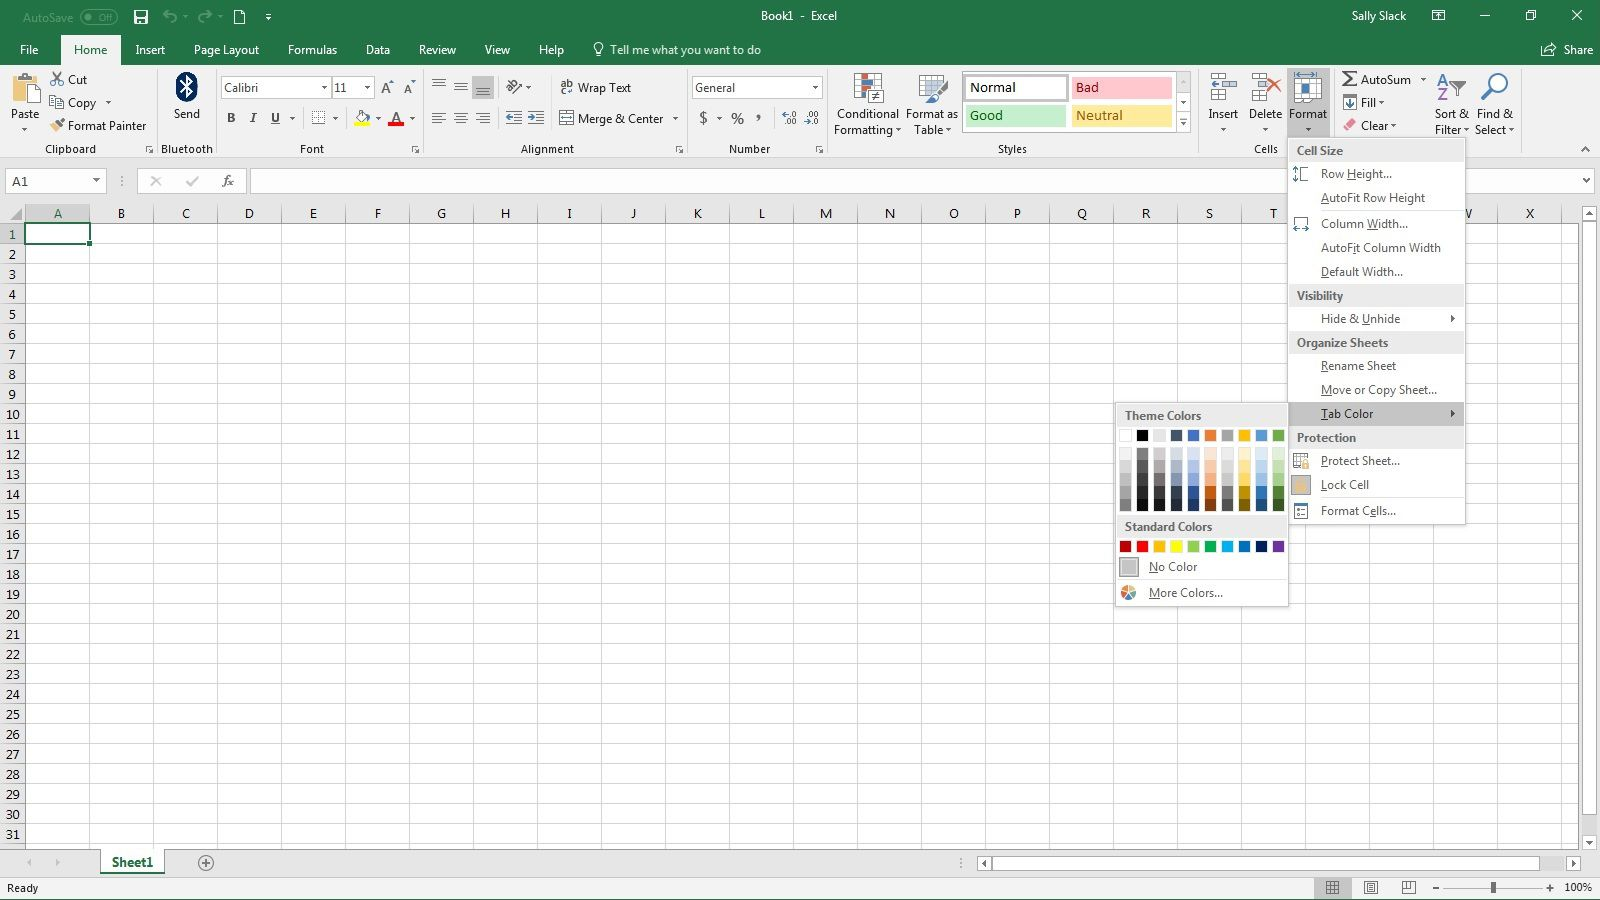 Workbooks workbook definition computer : How to Change Worksheet Tab Colors in Excel